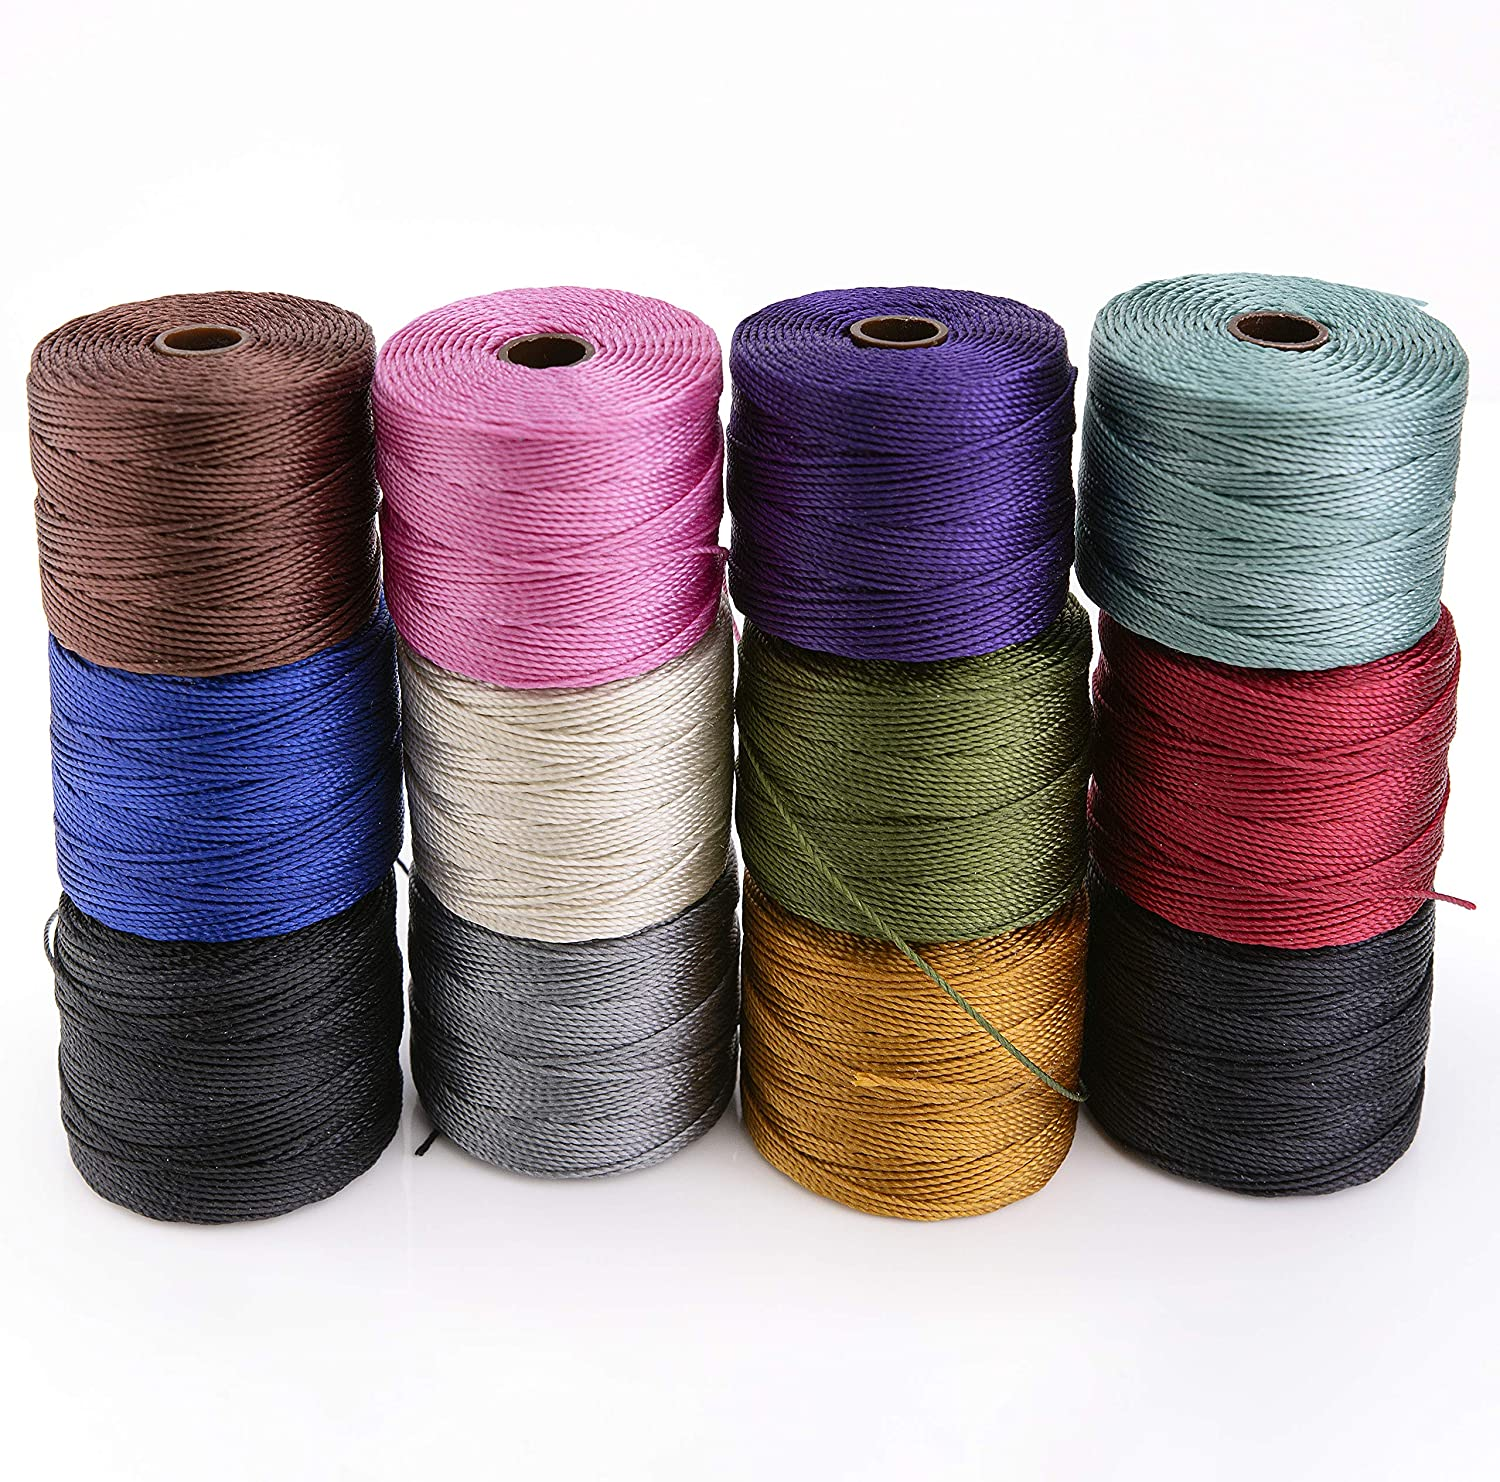 iSuperb 28 Colors Waxed Polyester Cord 1mm Wax Strings Waxed Thread Bracelets Wax Ropes for Jewelry Craft Making 28 Wax Cord